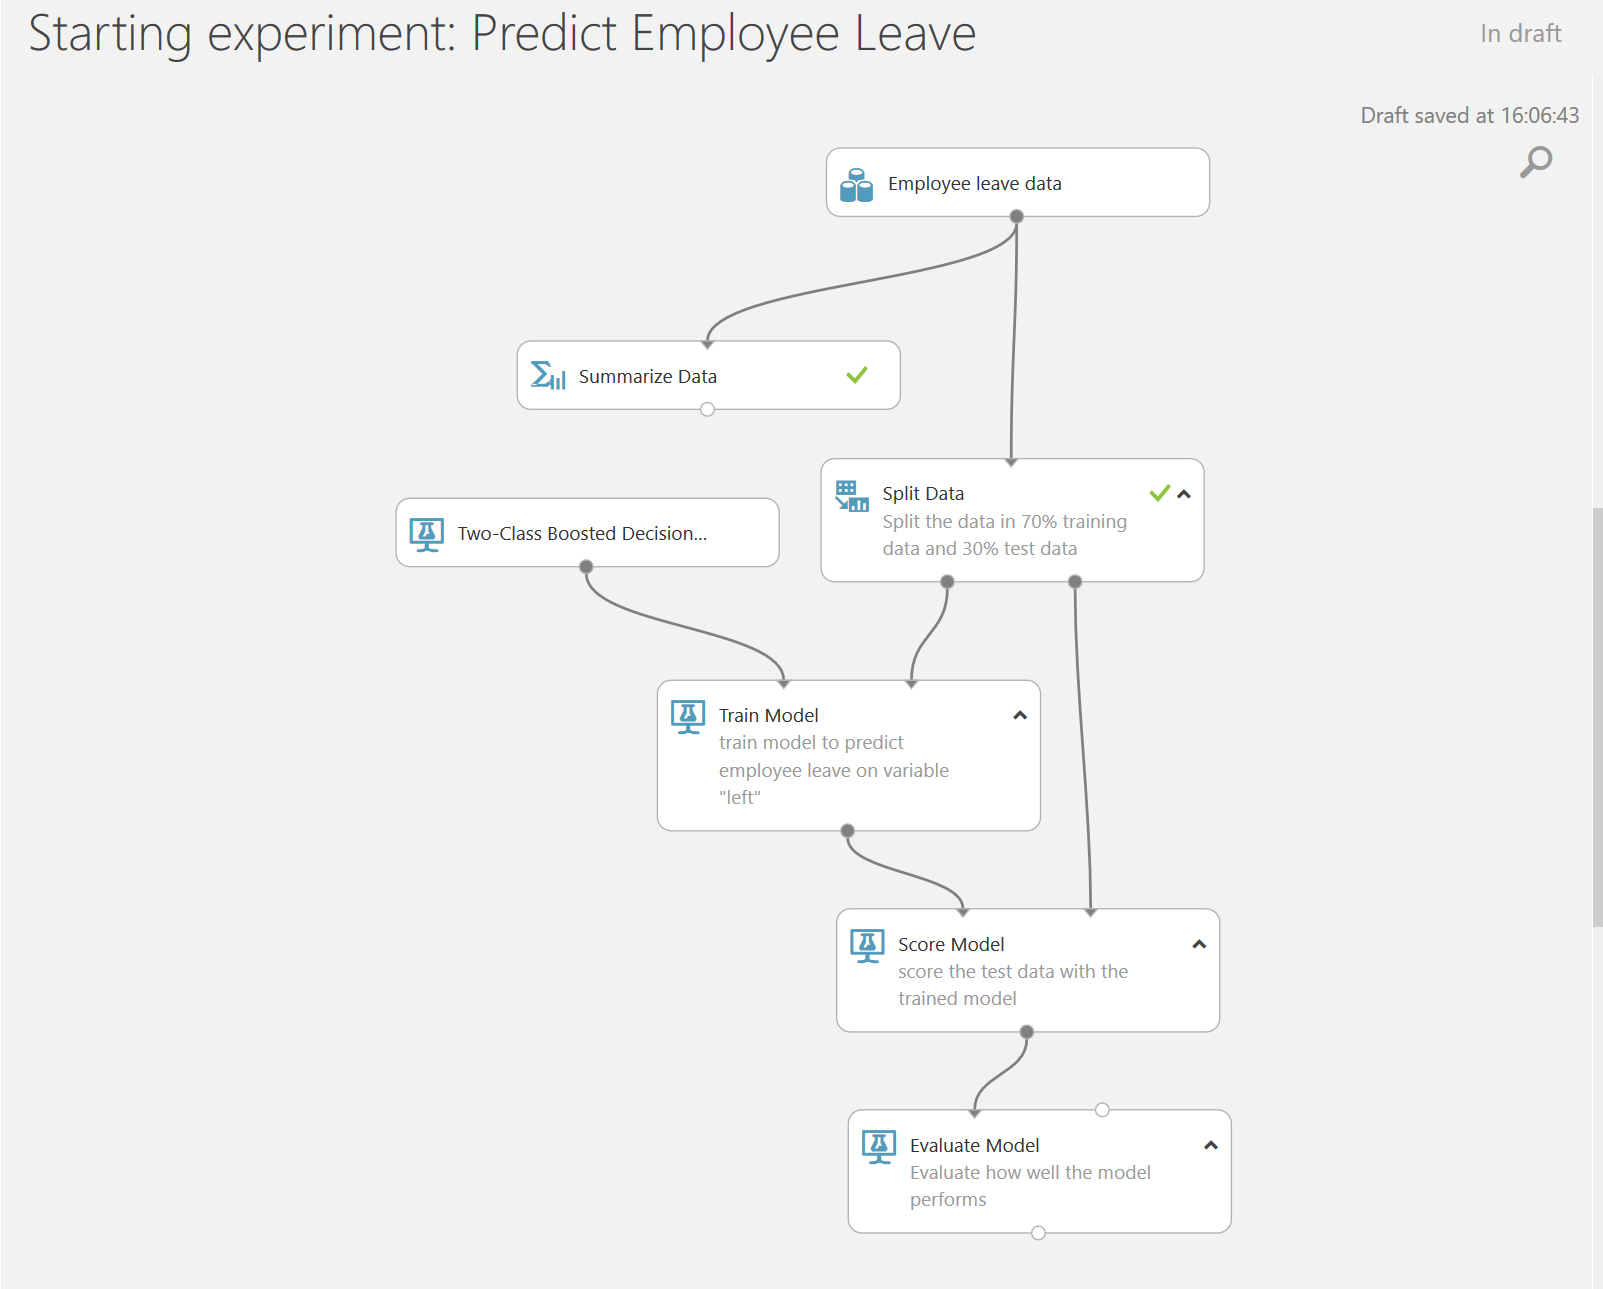 Predict employee leave - Build with Azure Machine Learning